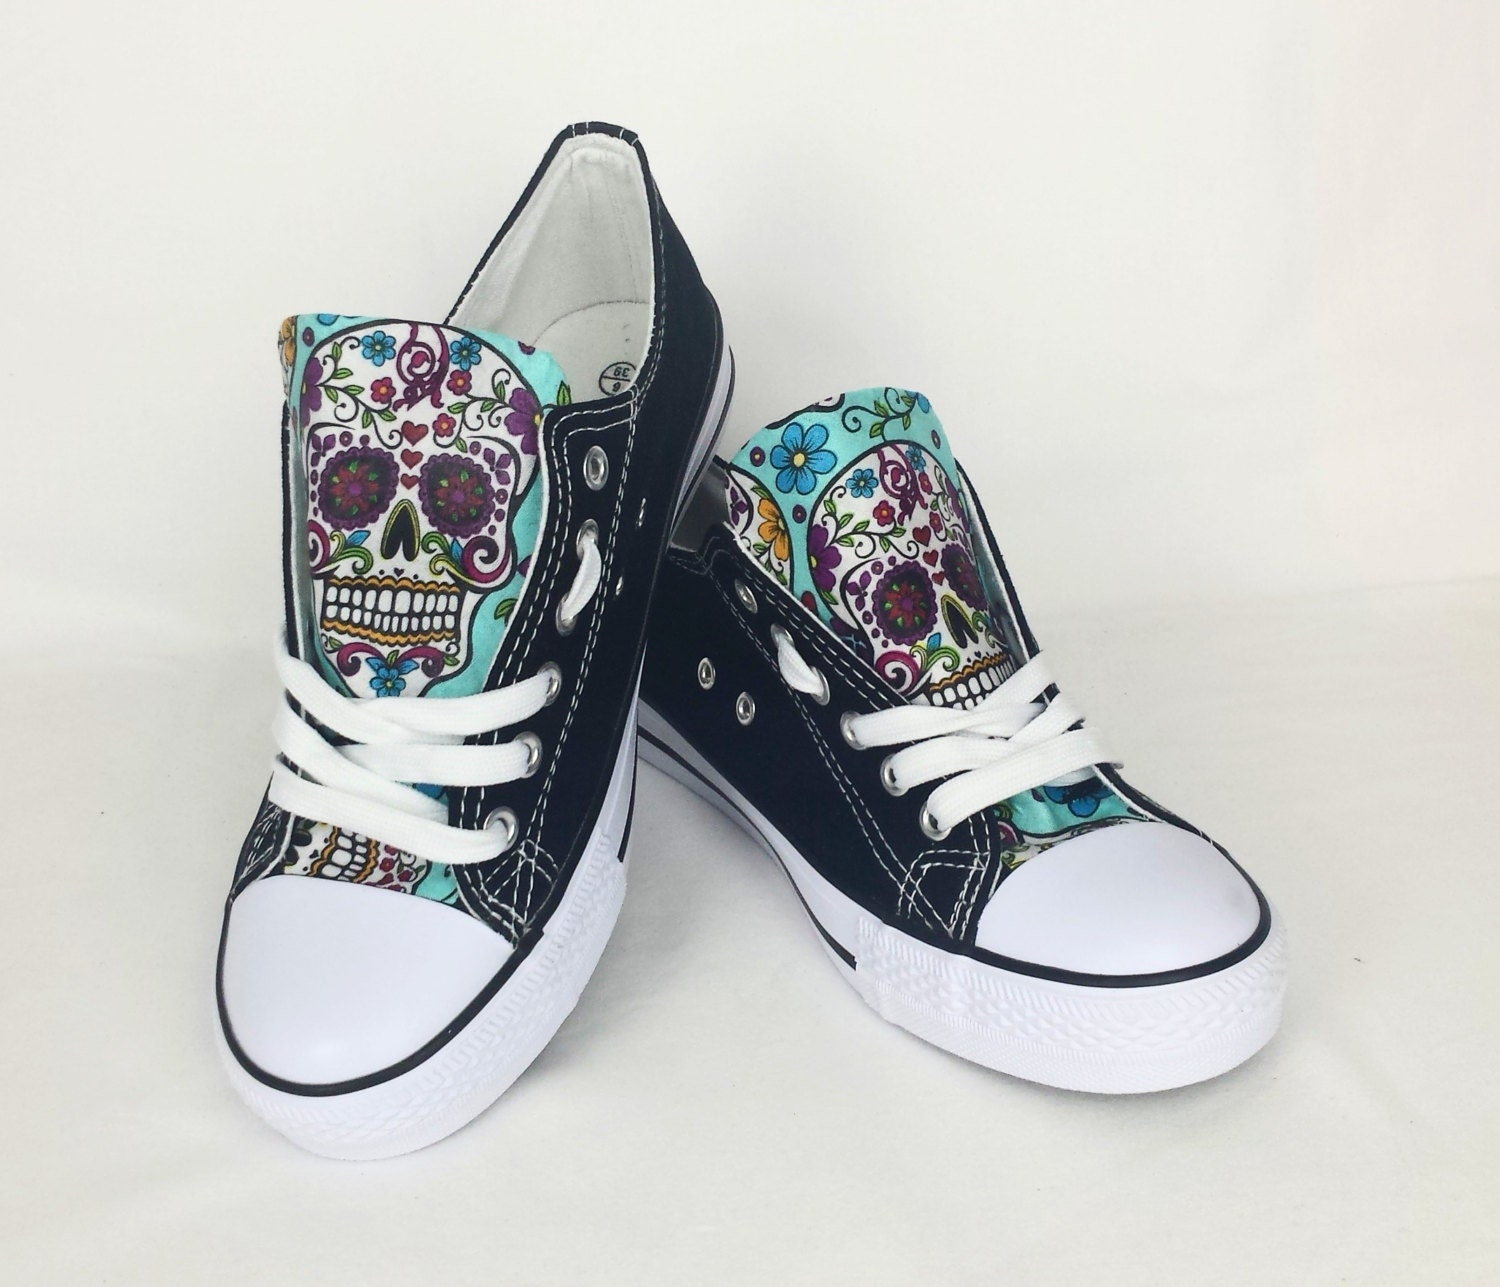 SALE Sugar skull shoes custom shoes day of the dead custom